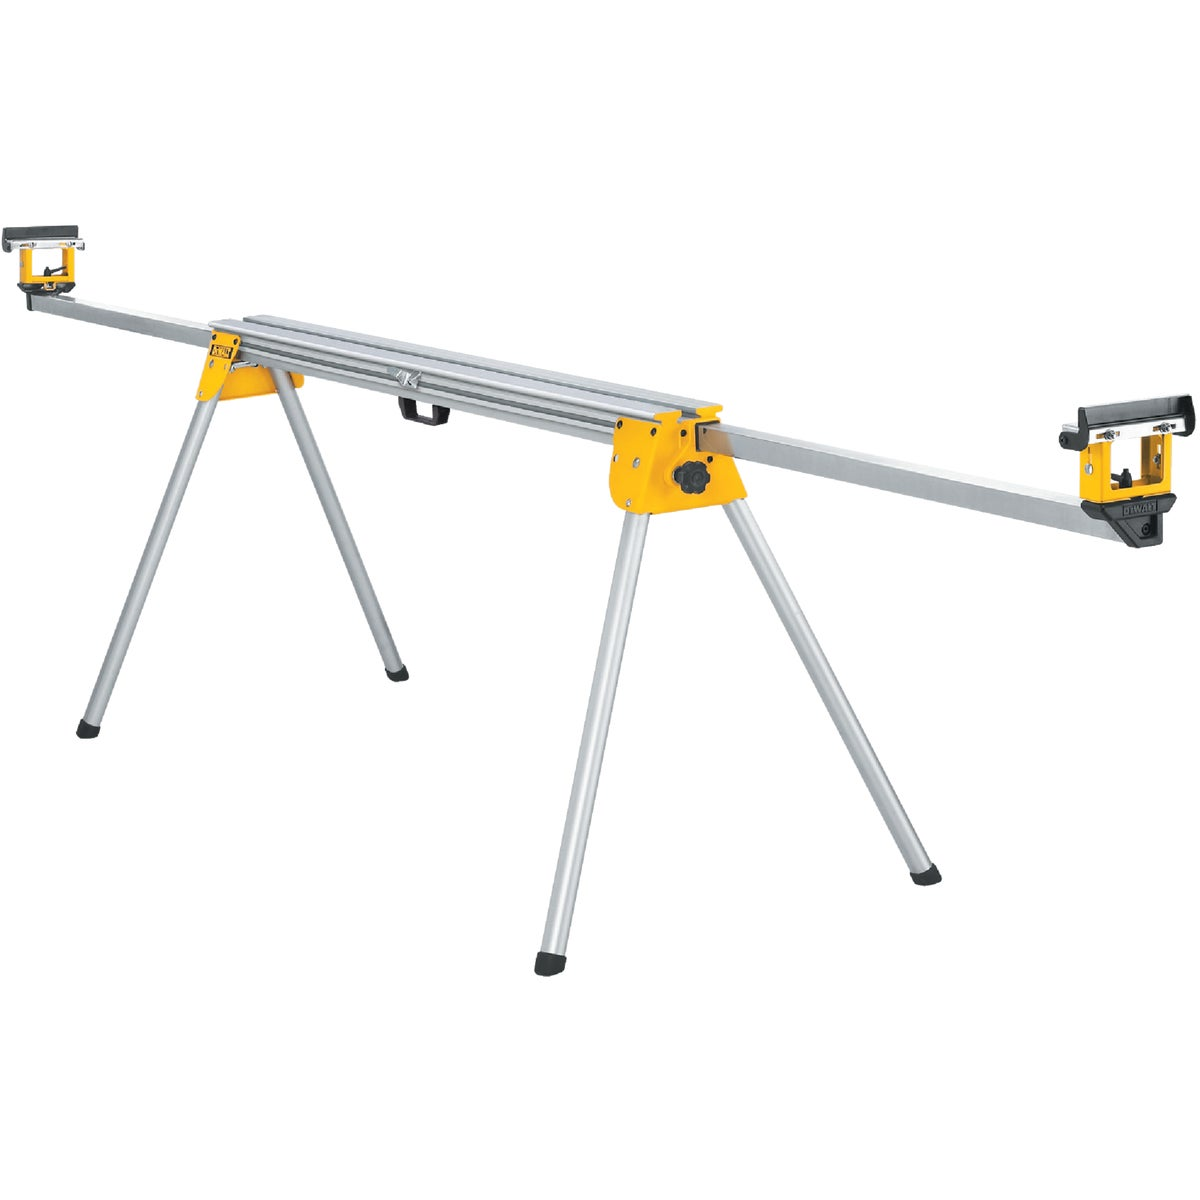 MITER SAW STAND - DWX723 by DeWalt